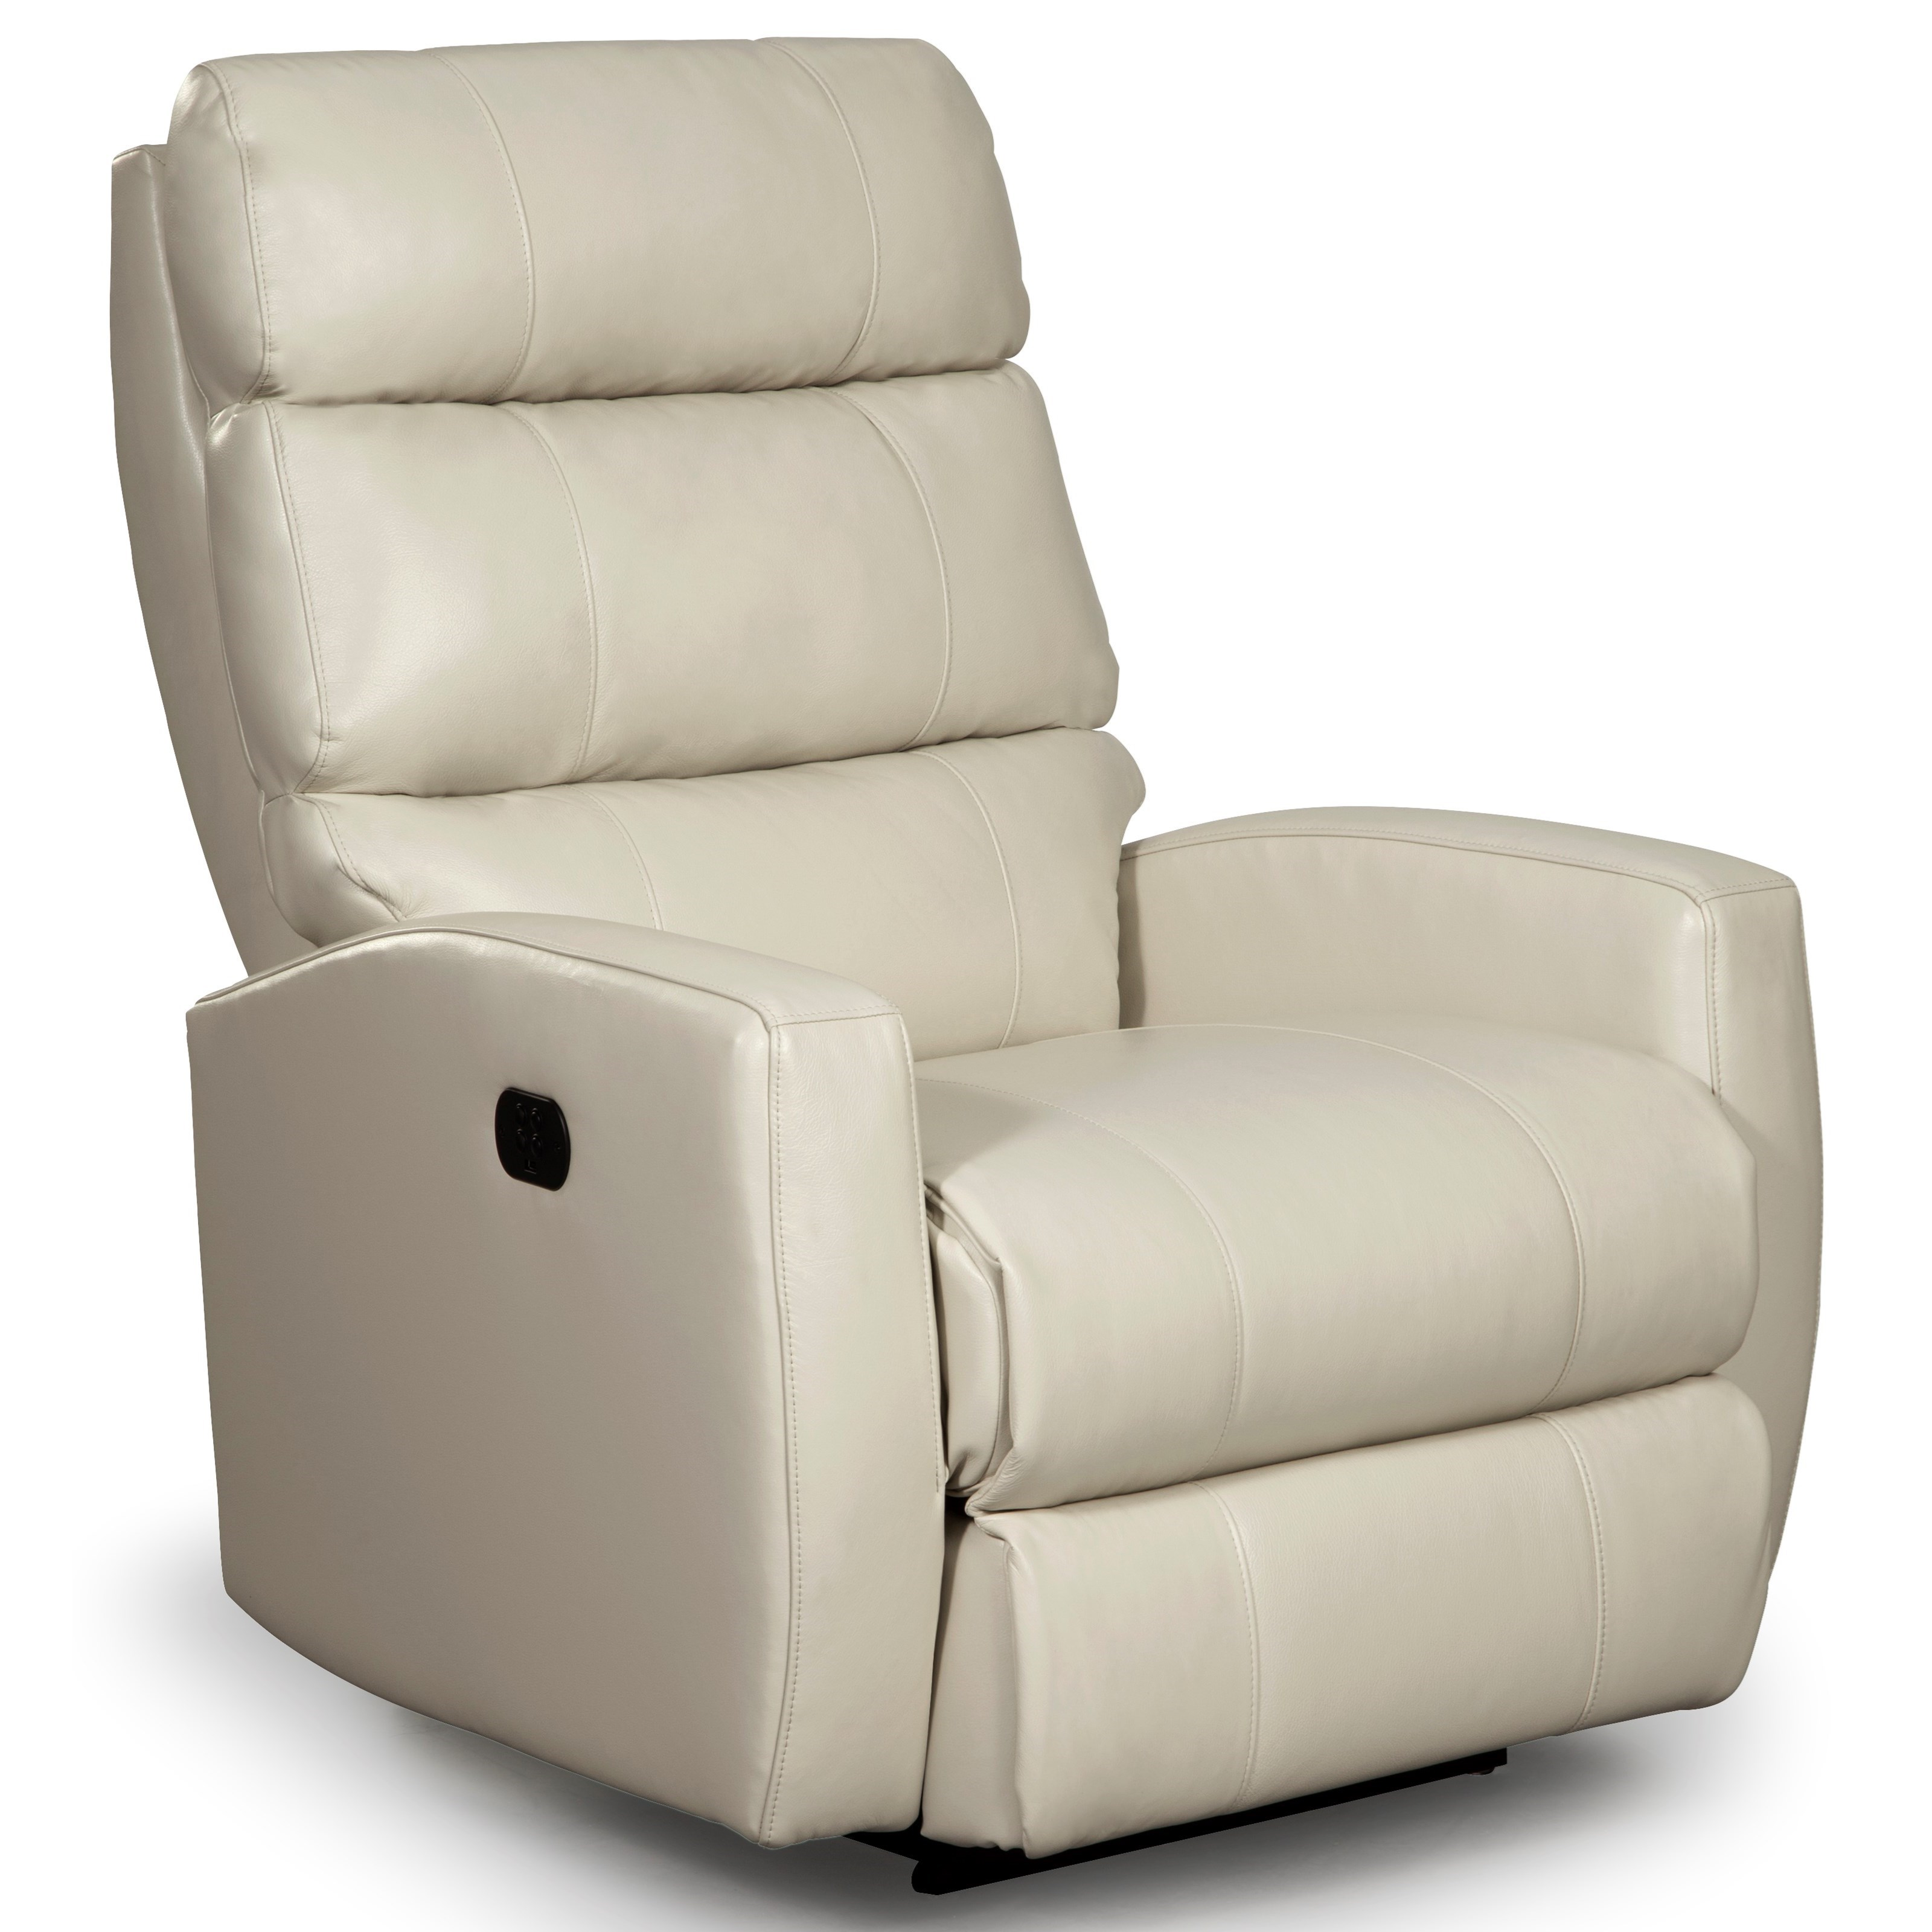 Hillarie Power Space Saver Recliner w/ Pwr Headrest by Best Home Furnishings at SuperStore